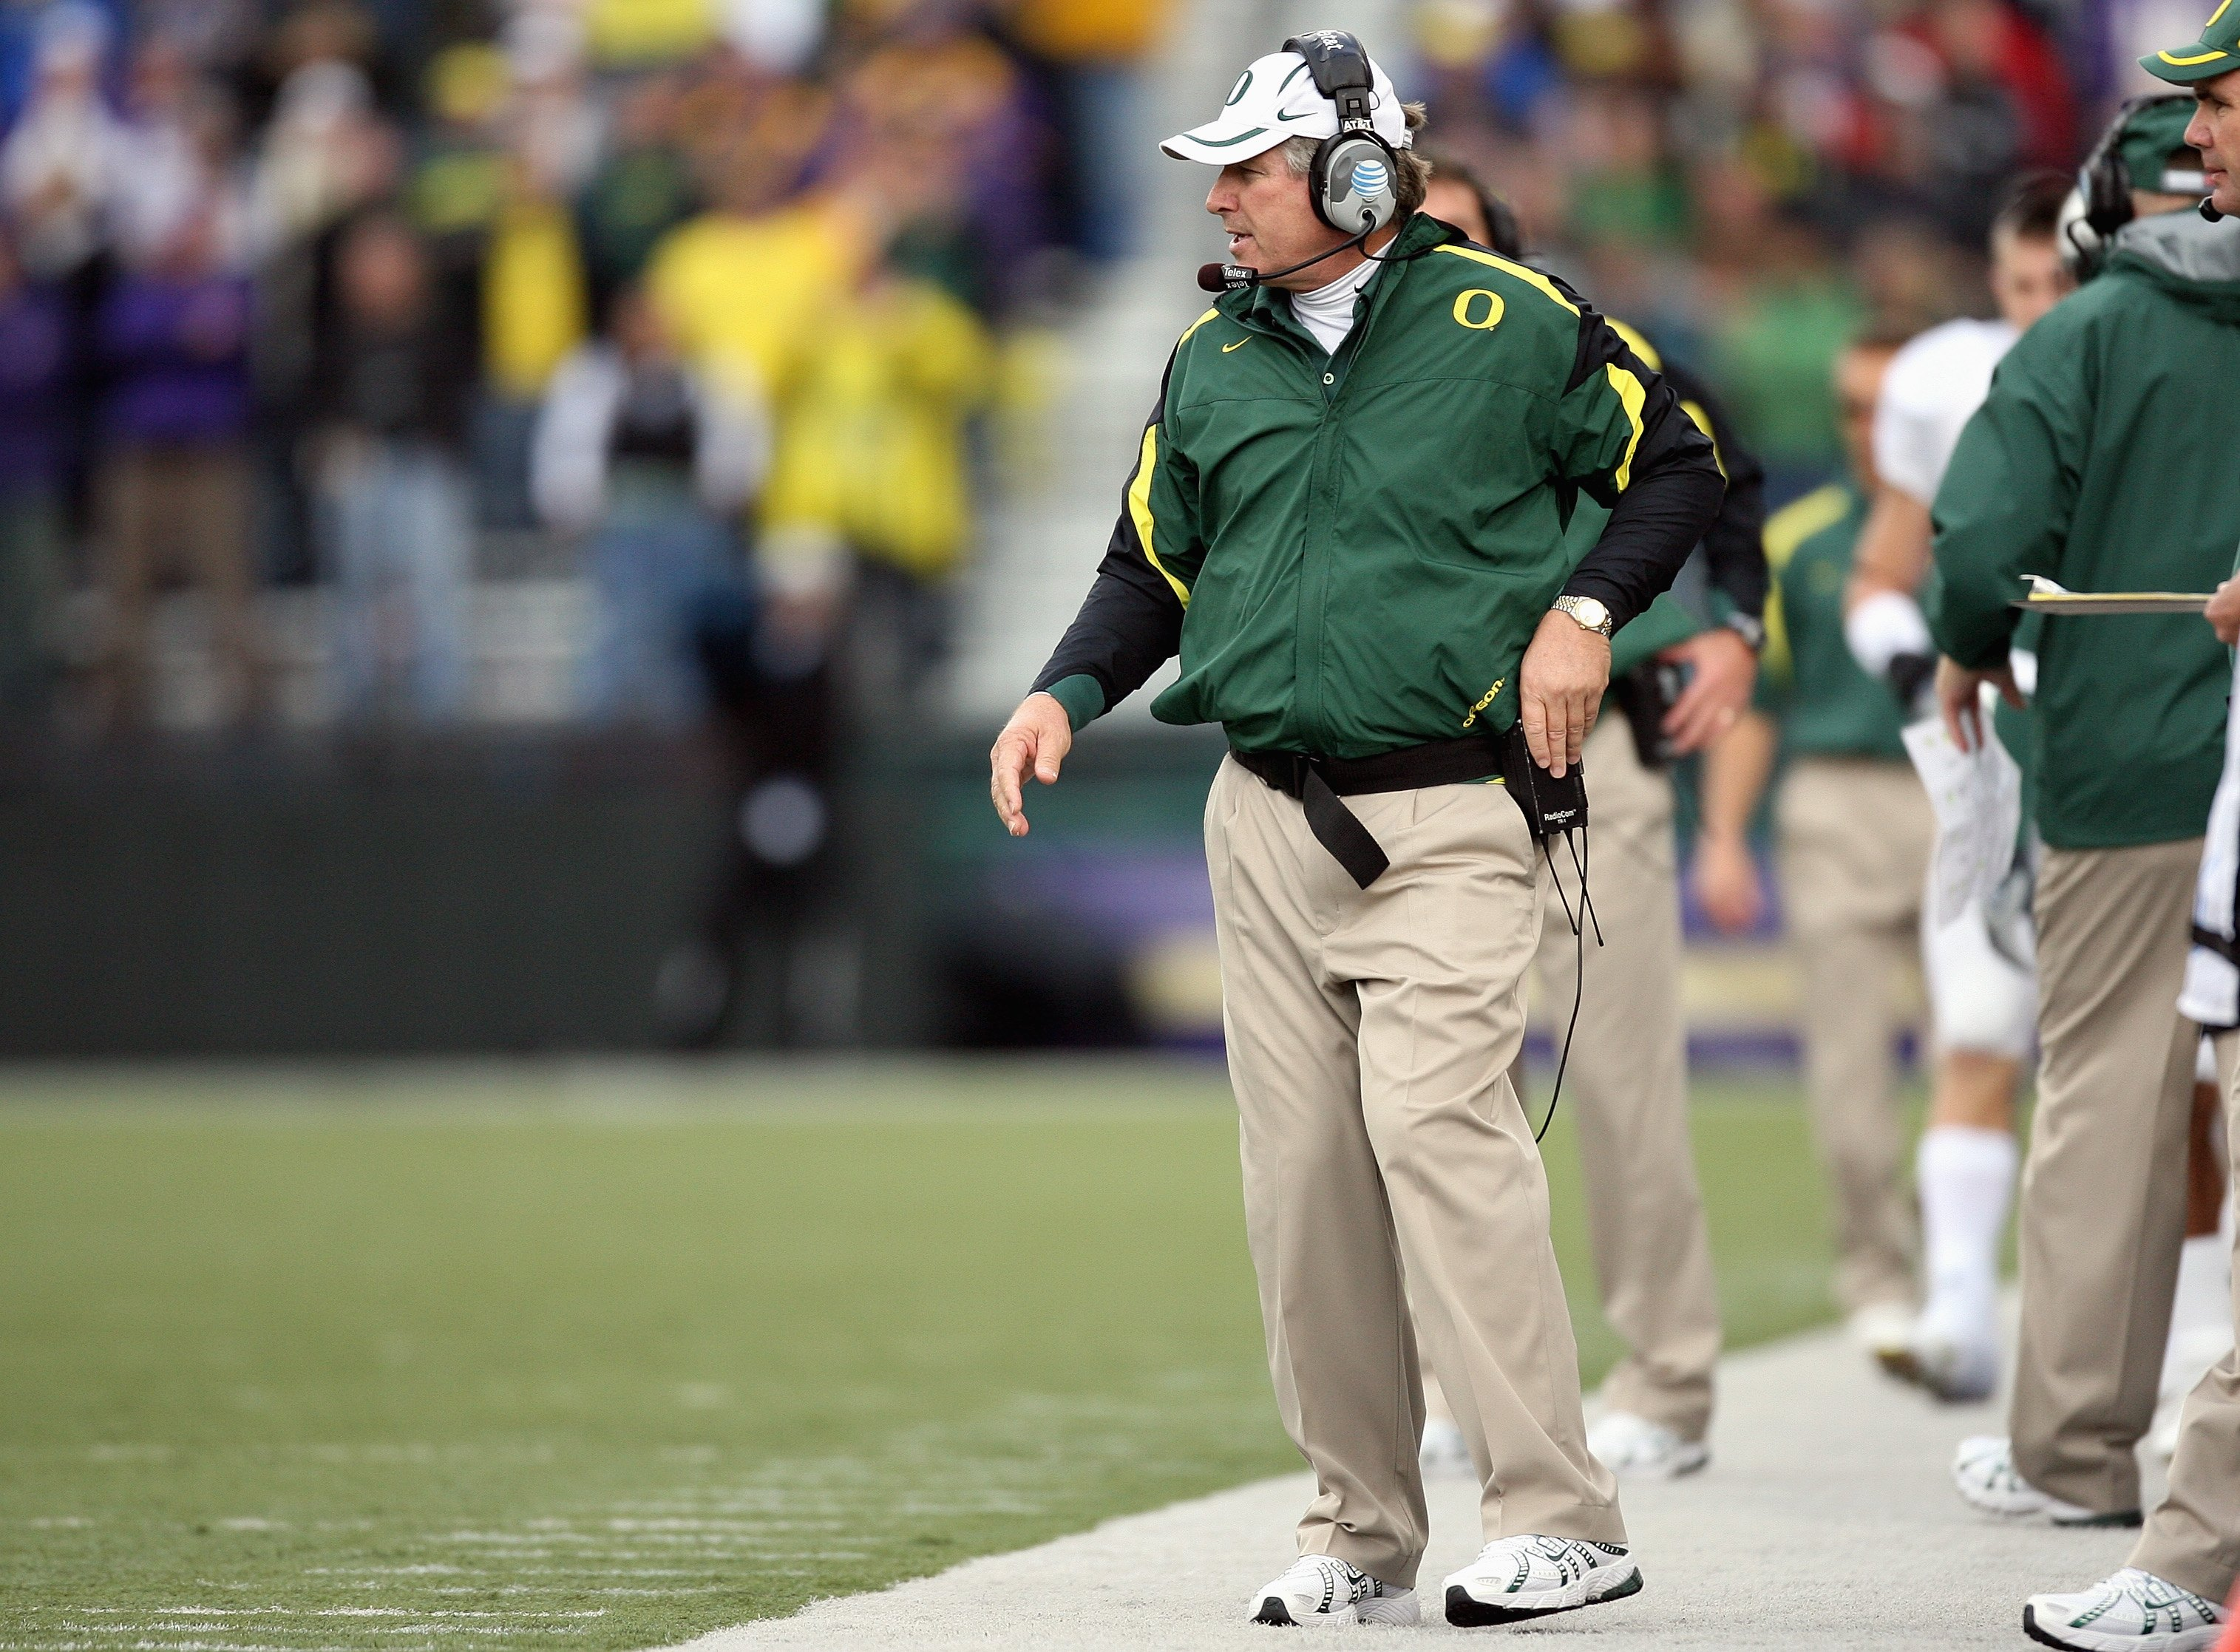 SEATTLE - OCTOBER 20: Head coach Mike Bellotti of the Oregon Ducks walks on sidelines during the game against the Washington Huskies at Husky Stadium on October 20, 2007 in Seattle, Washington. The Ducks defeated the Huskies 55-34. (Photo by Otto Greule J